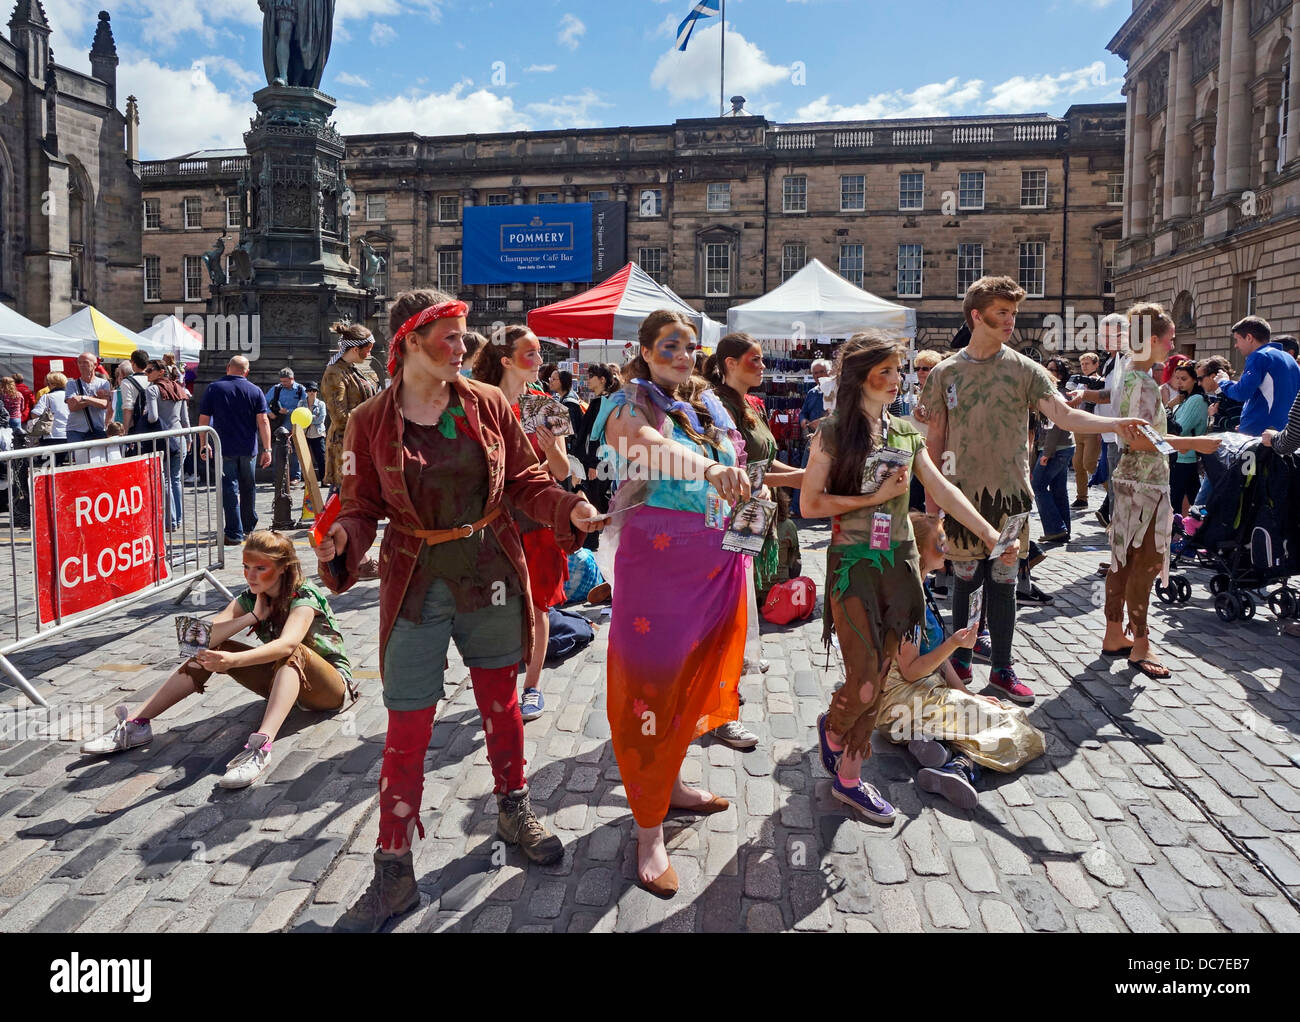 Flying High Theatre Company promoting Peter Pan show in The Royal Mile Edinburgh during the 2013 Edinburgh Festival - Stock Image